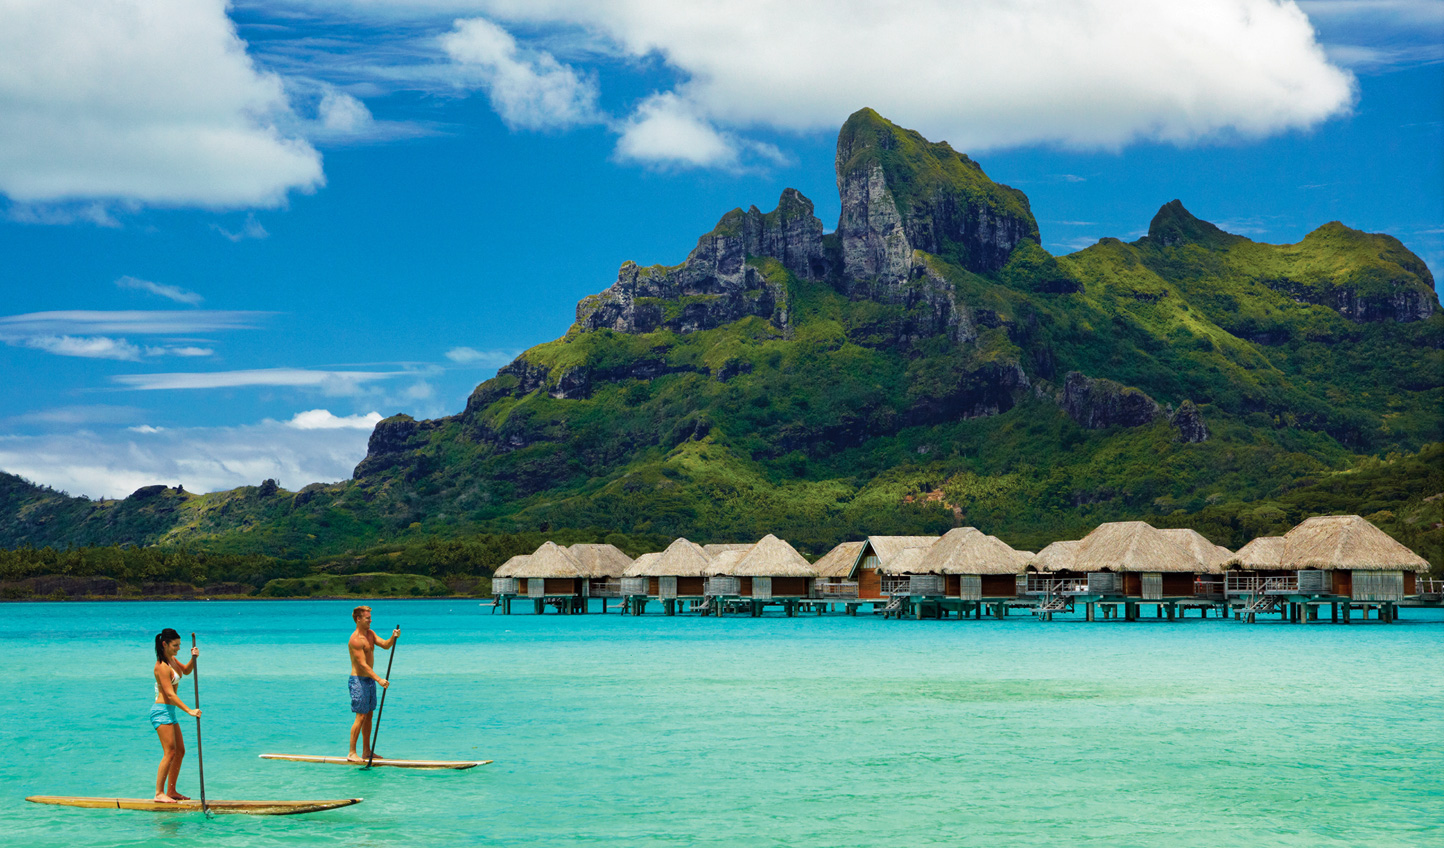 Explore the lagoon by paddleboard